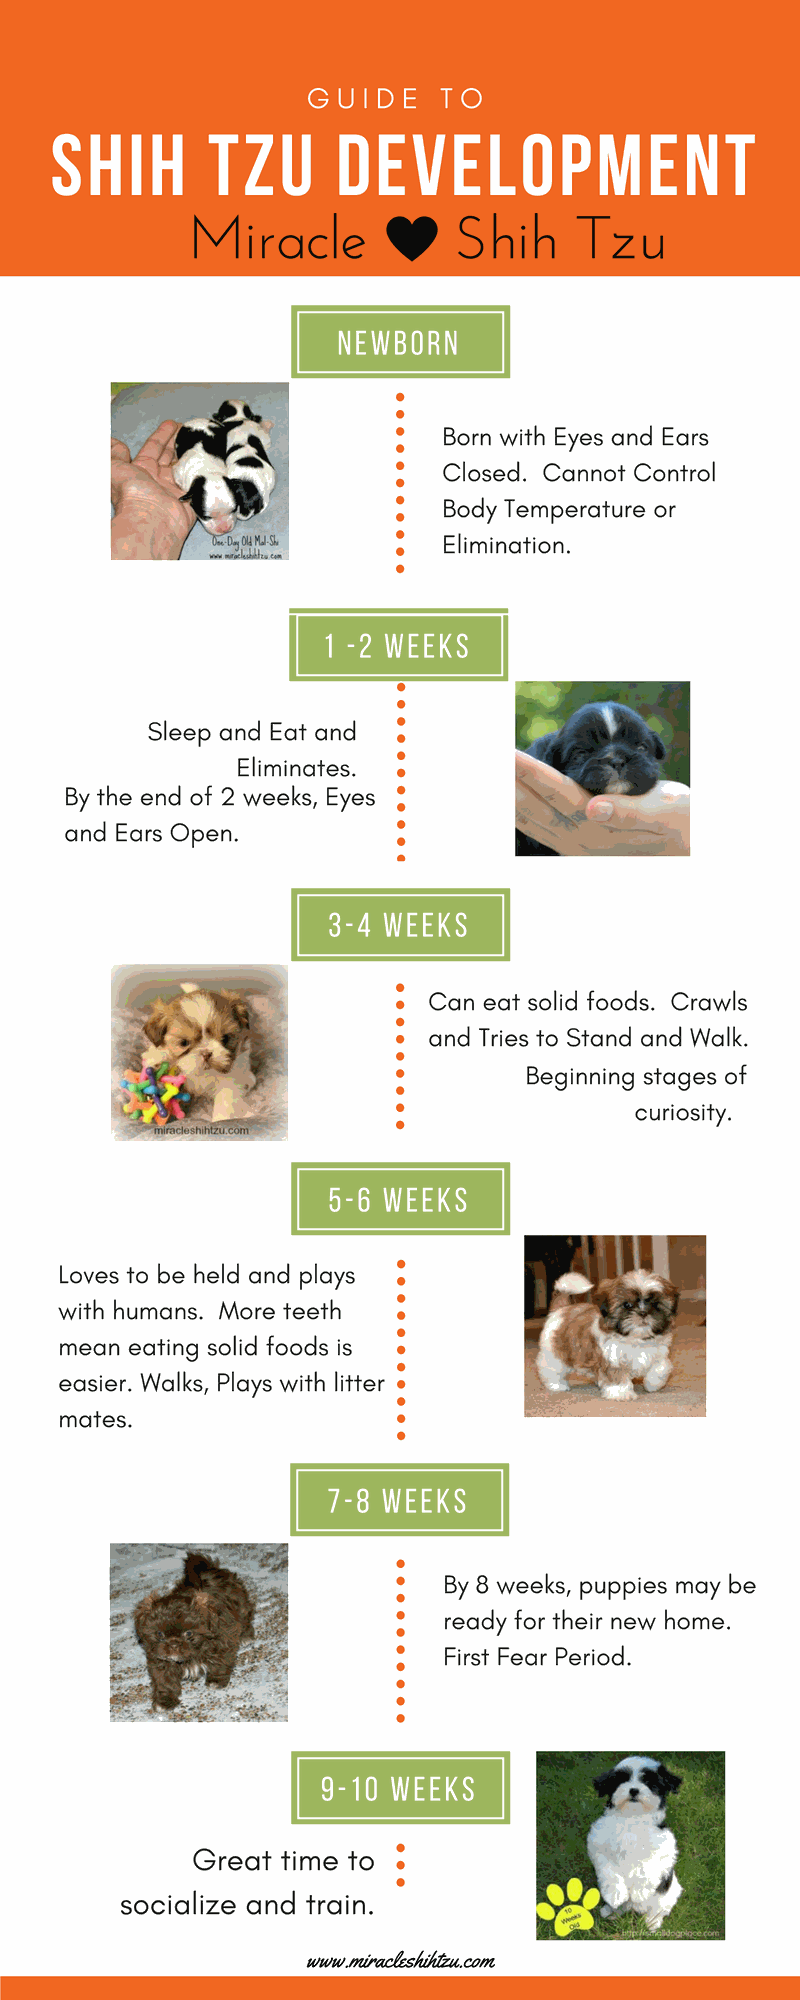 Shih Tzu Development Infographic